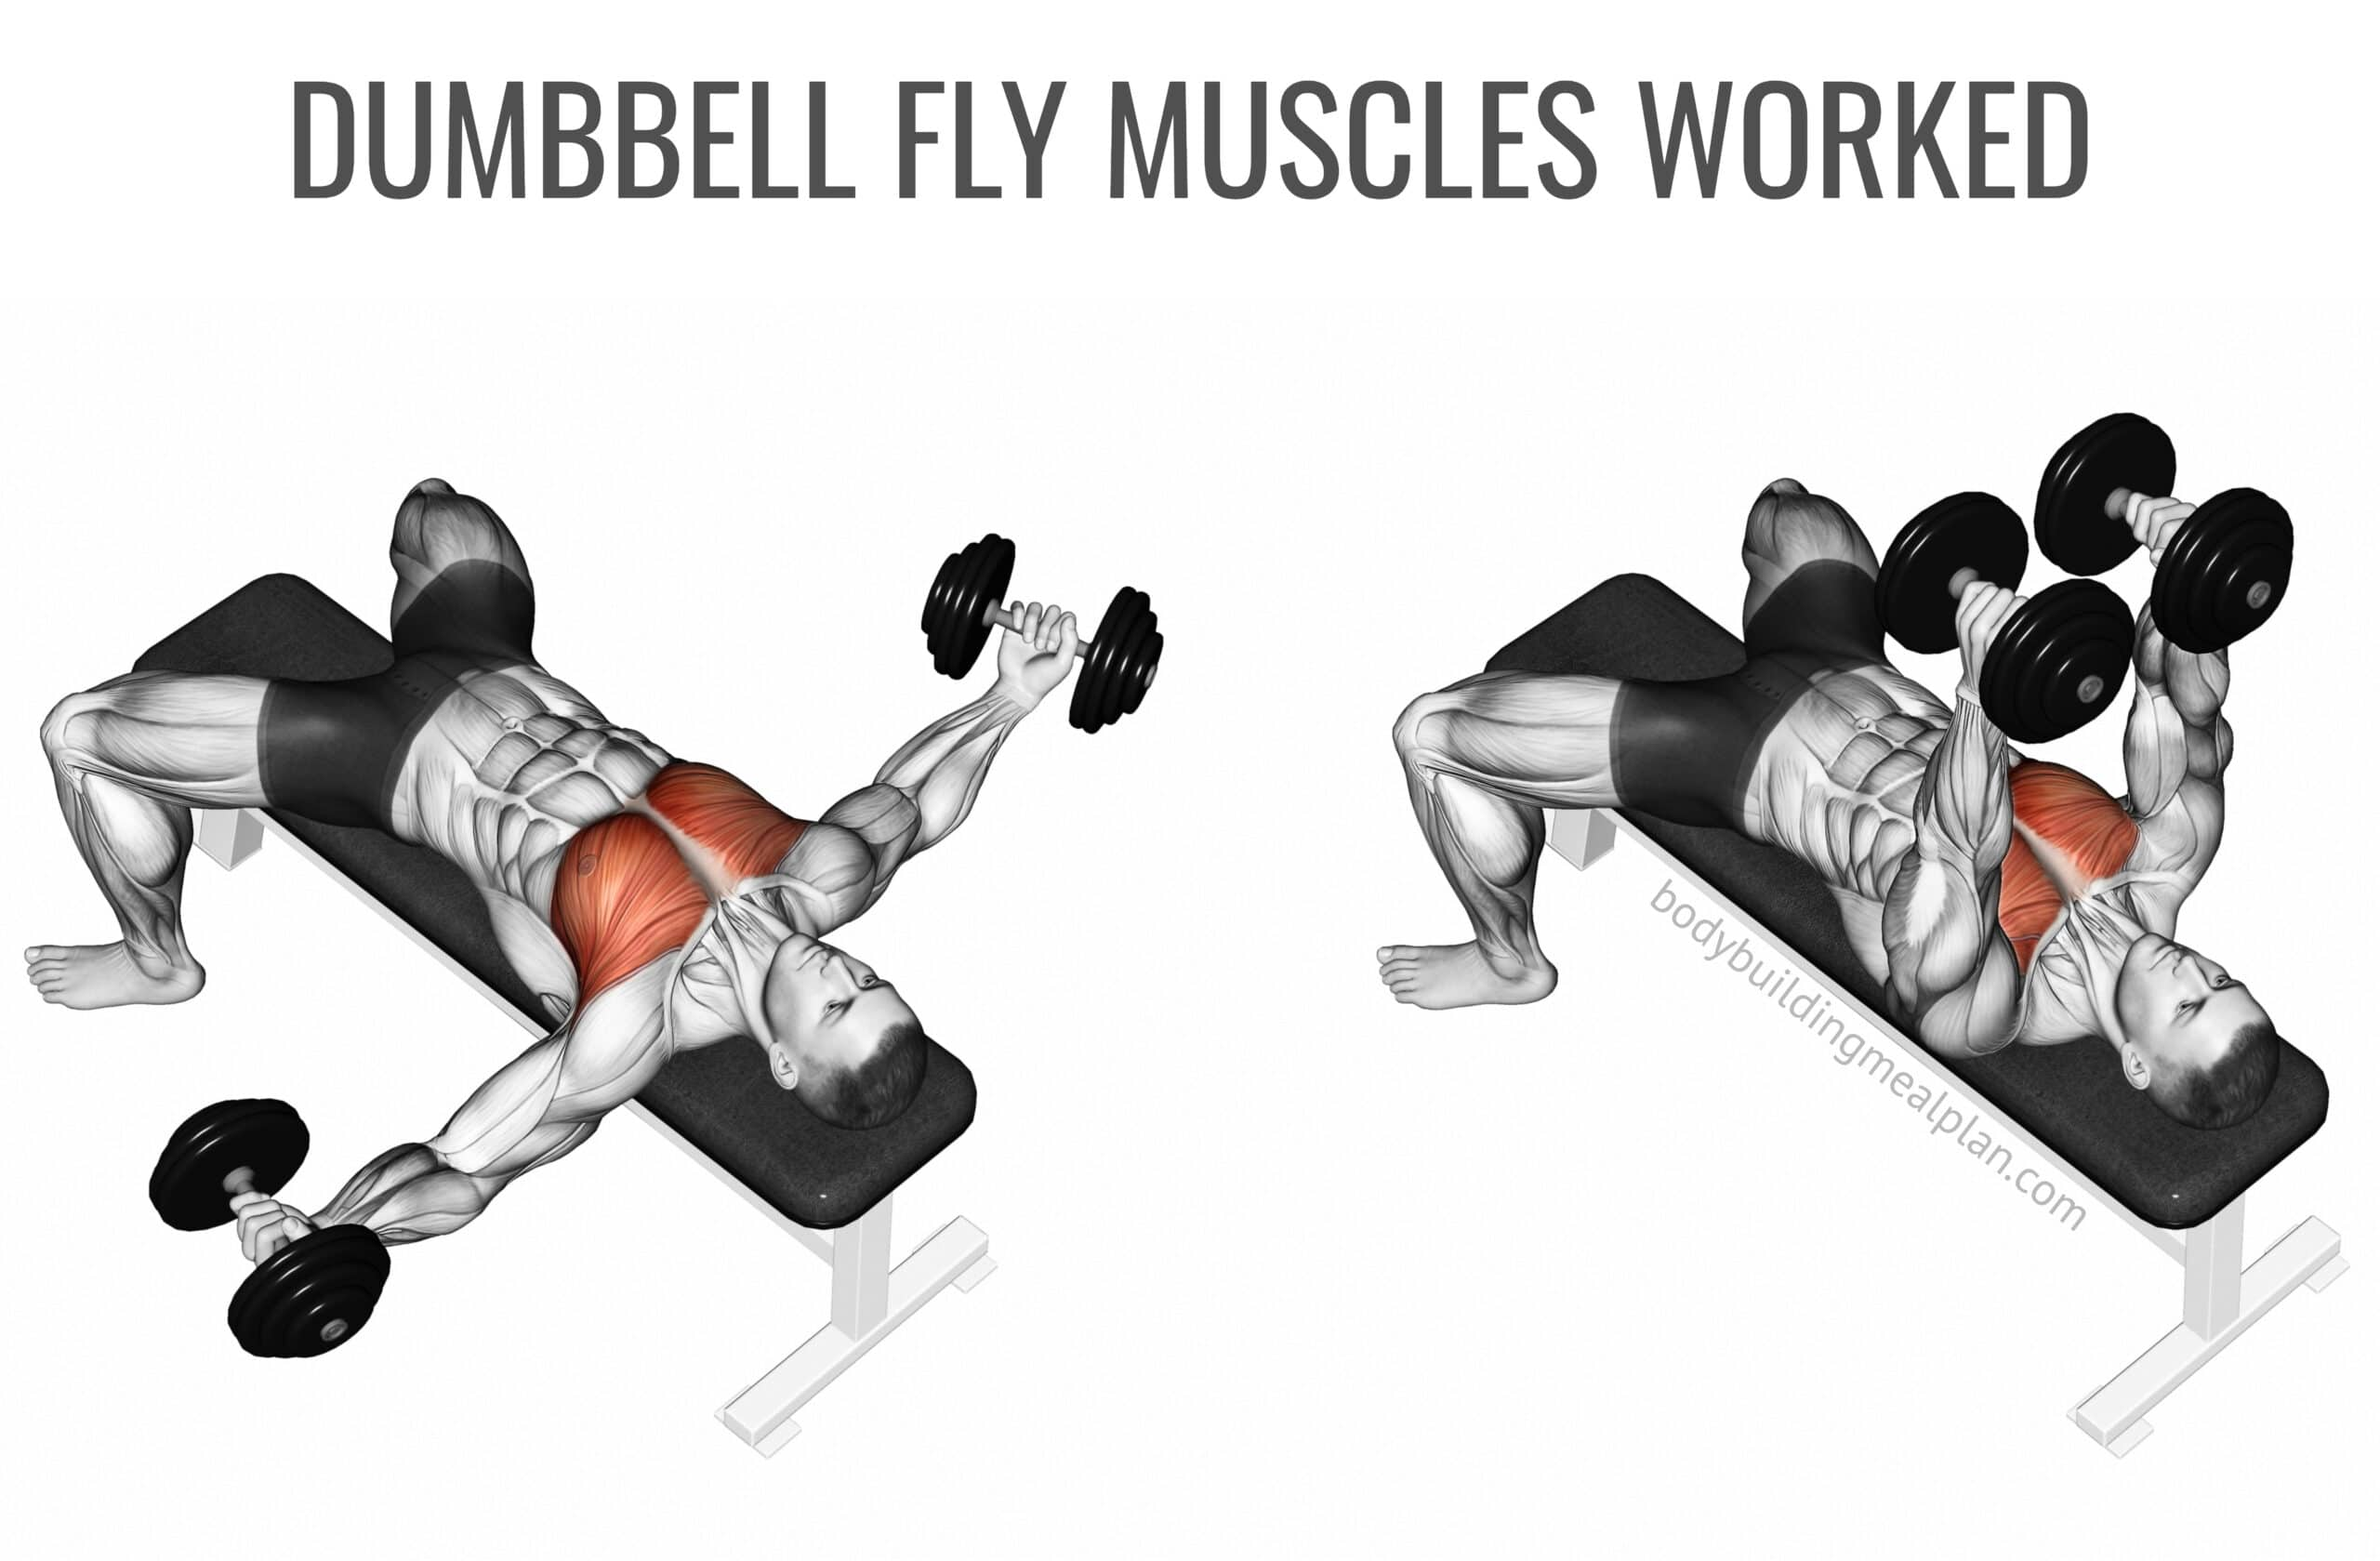 Dumbbell Fly Muscles Worked Image